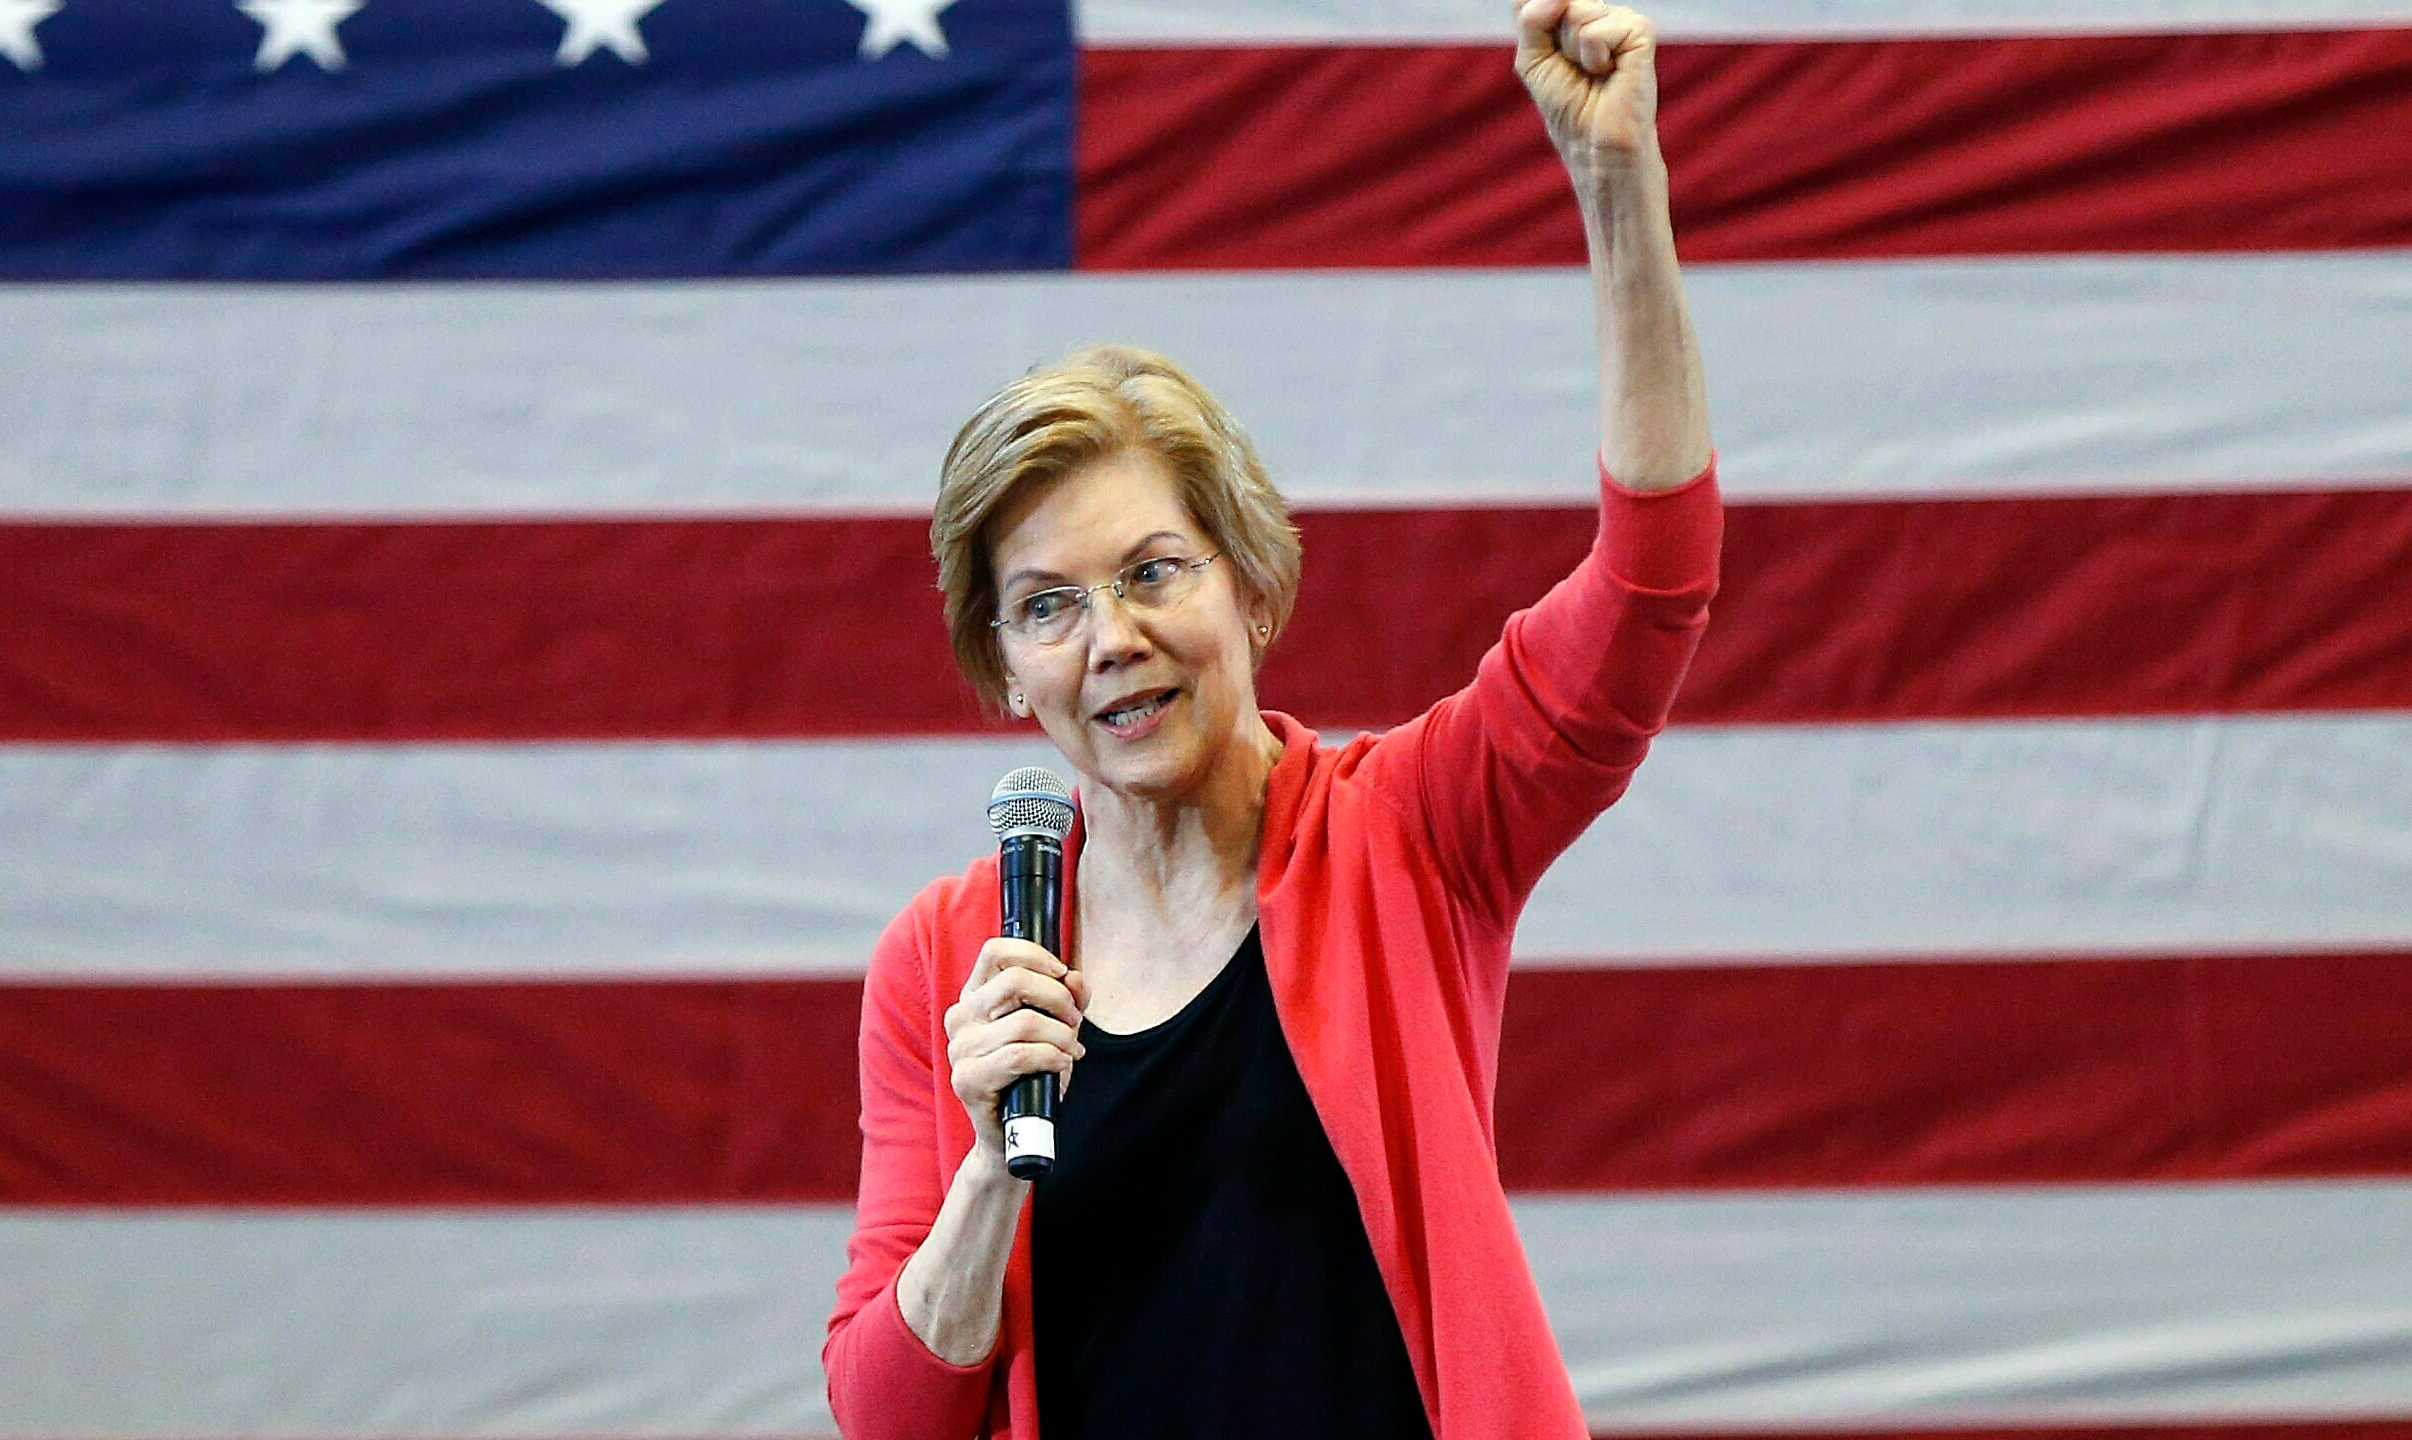 Election_2020_Elizabeth_Warren_02110-159532.jpg06711808